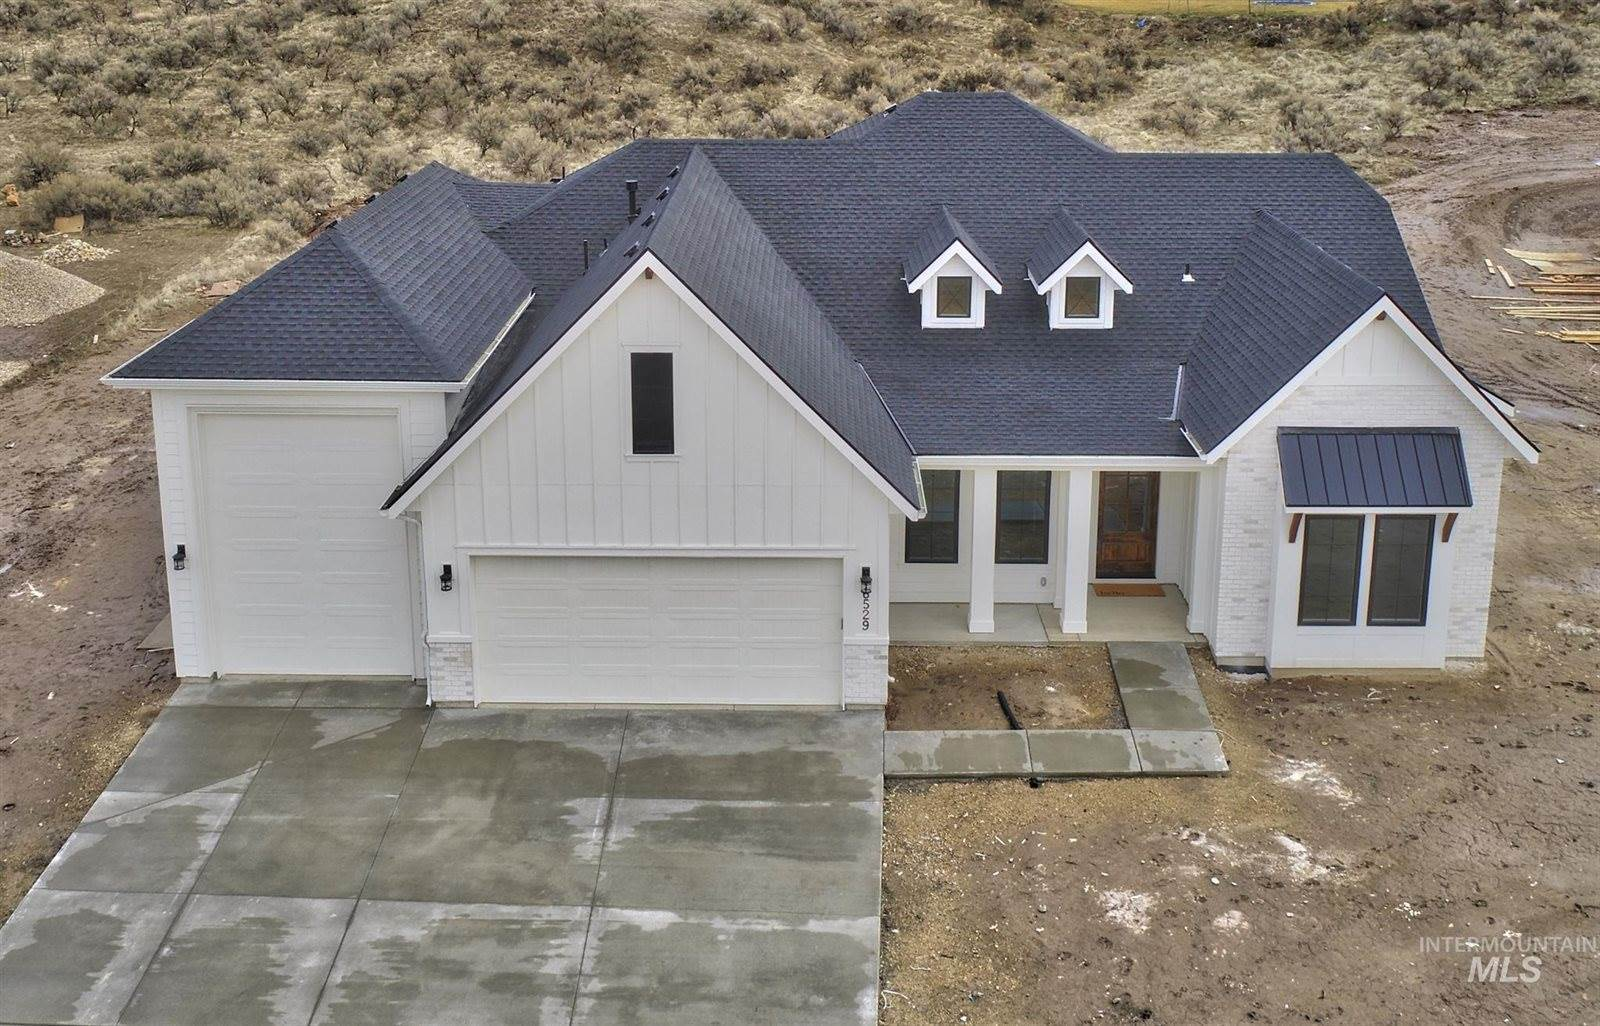 6953 West Biathlon St, Eagle, ID 83616